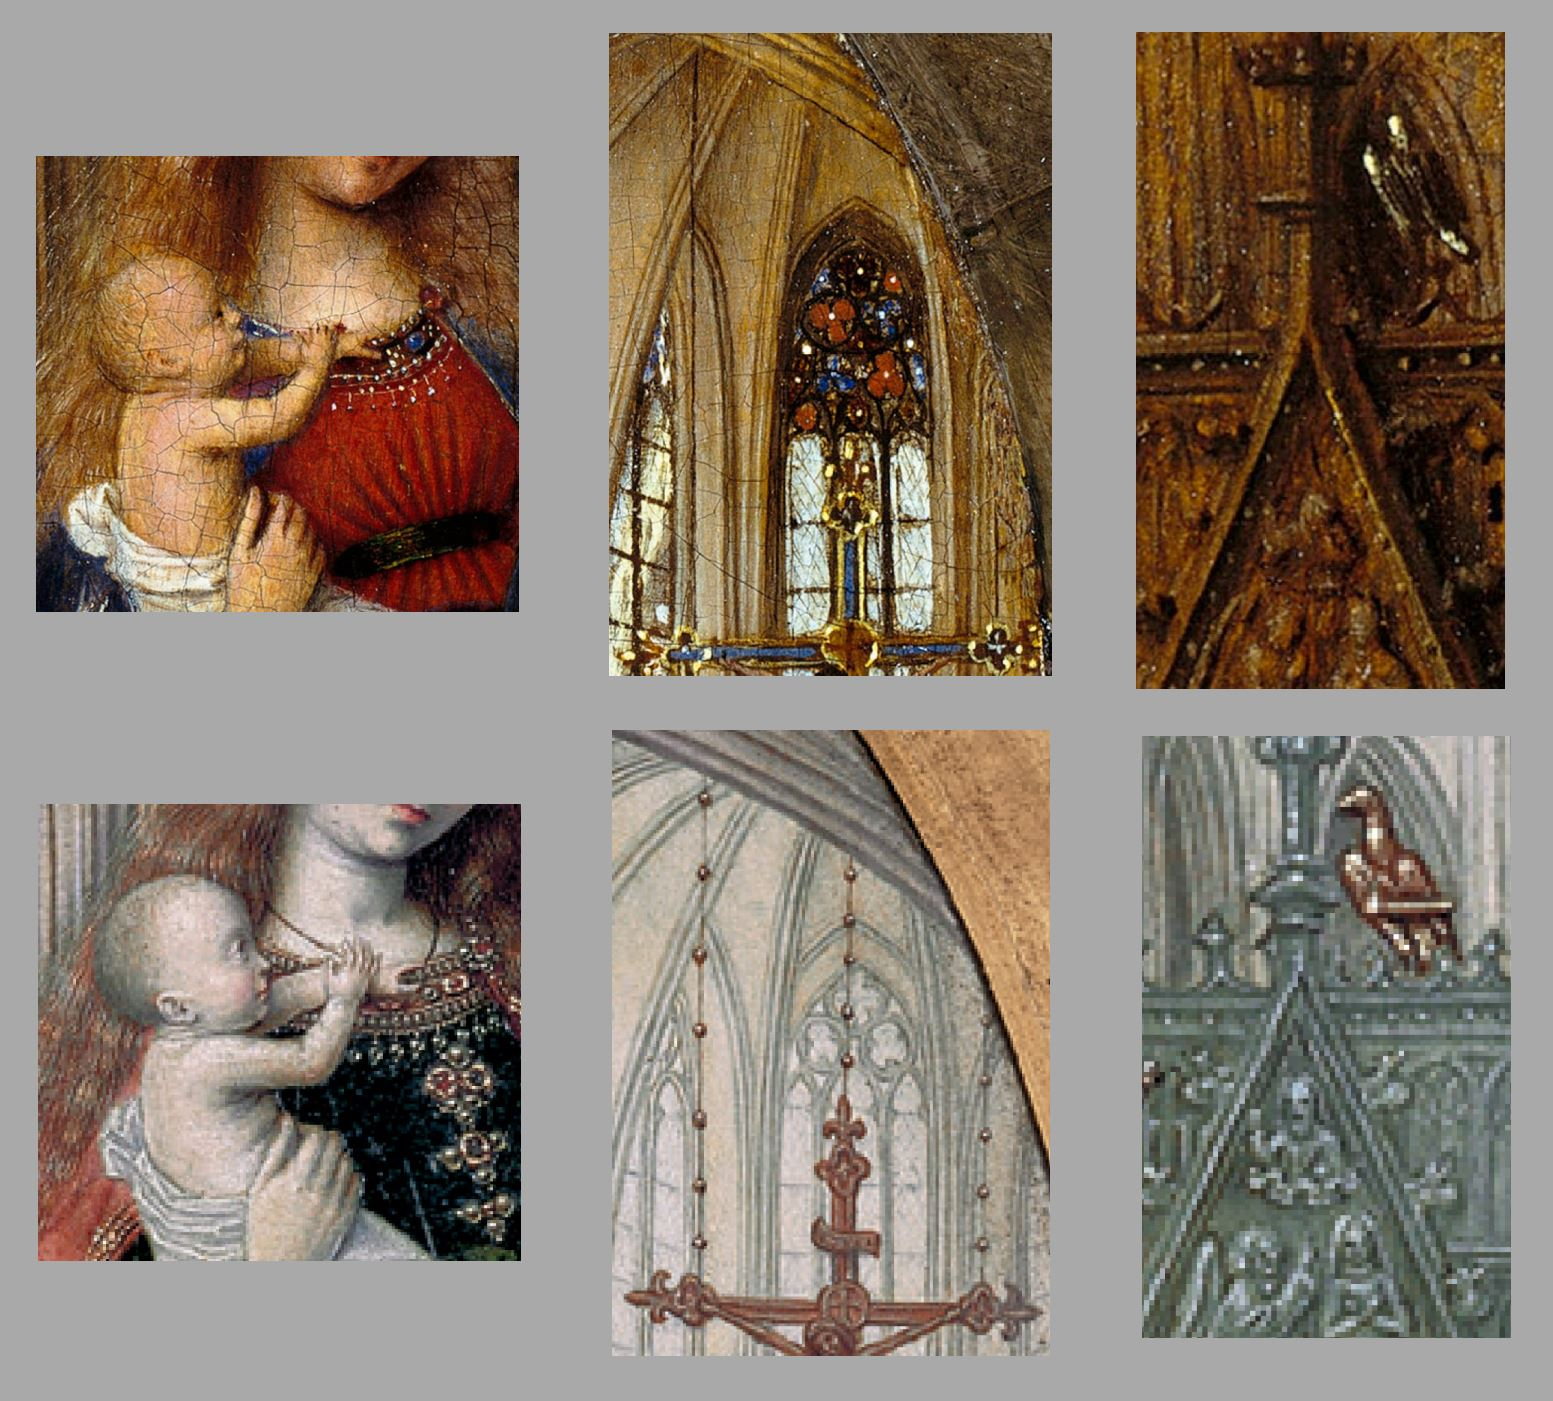 Van Eyck 1438–40 Madonna in the church Staatliche Museen, Berlin comparaison rationalisation